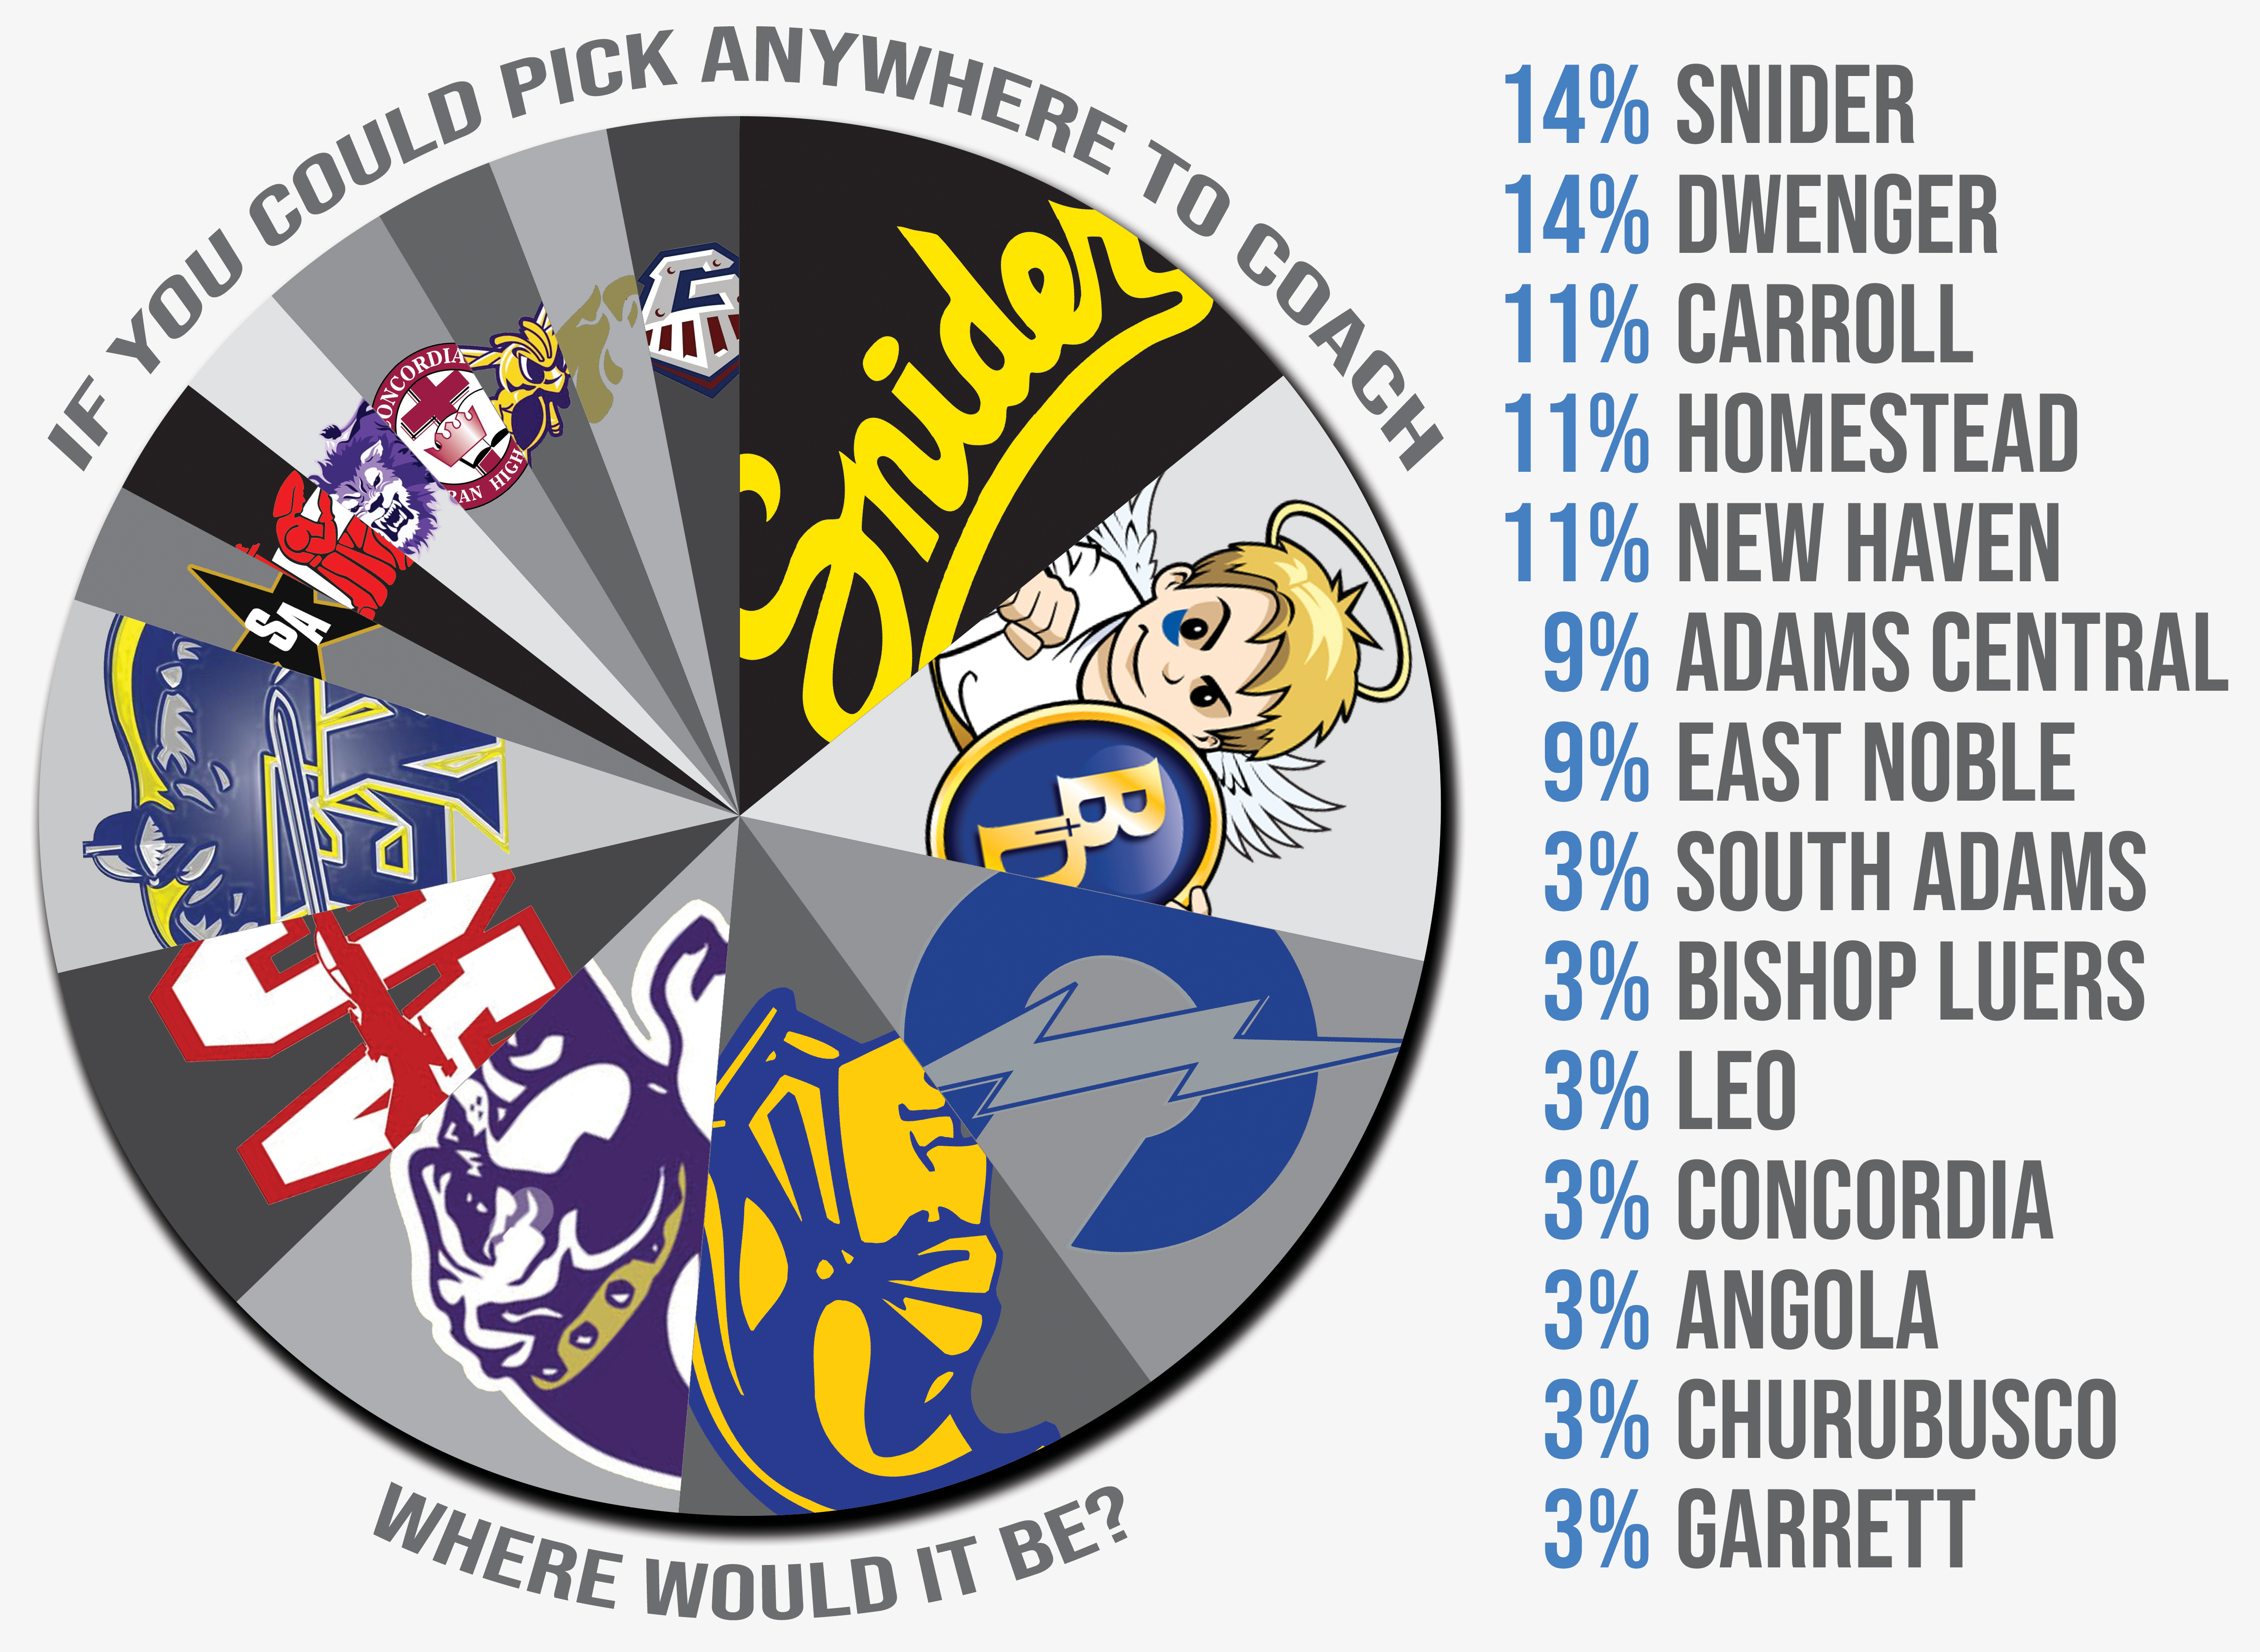 Two other SAC schools with similar demographics, Homestead and Carroll,  rank high on the most-desirable coaching jobs list. Chad Zolman is entering  his 14th ...